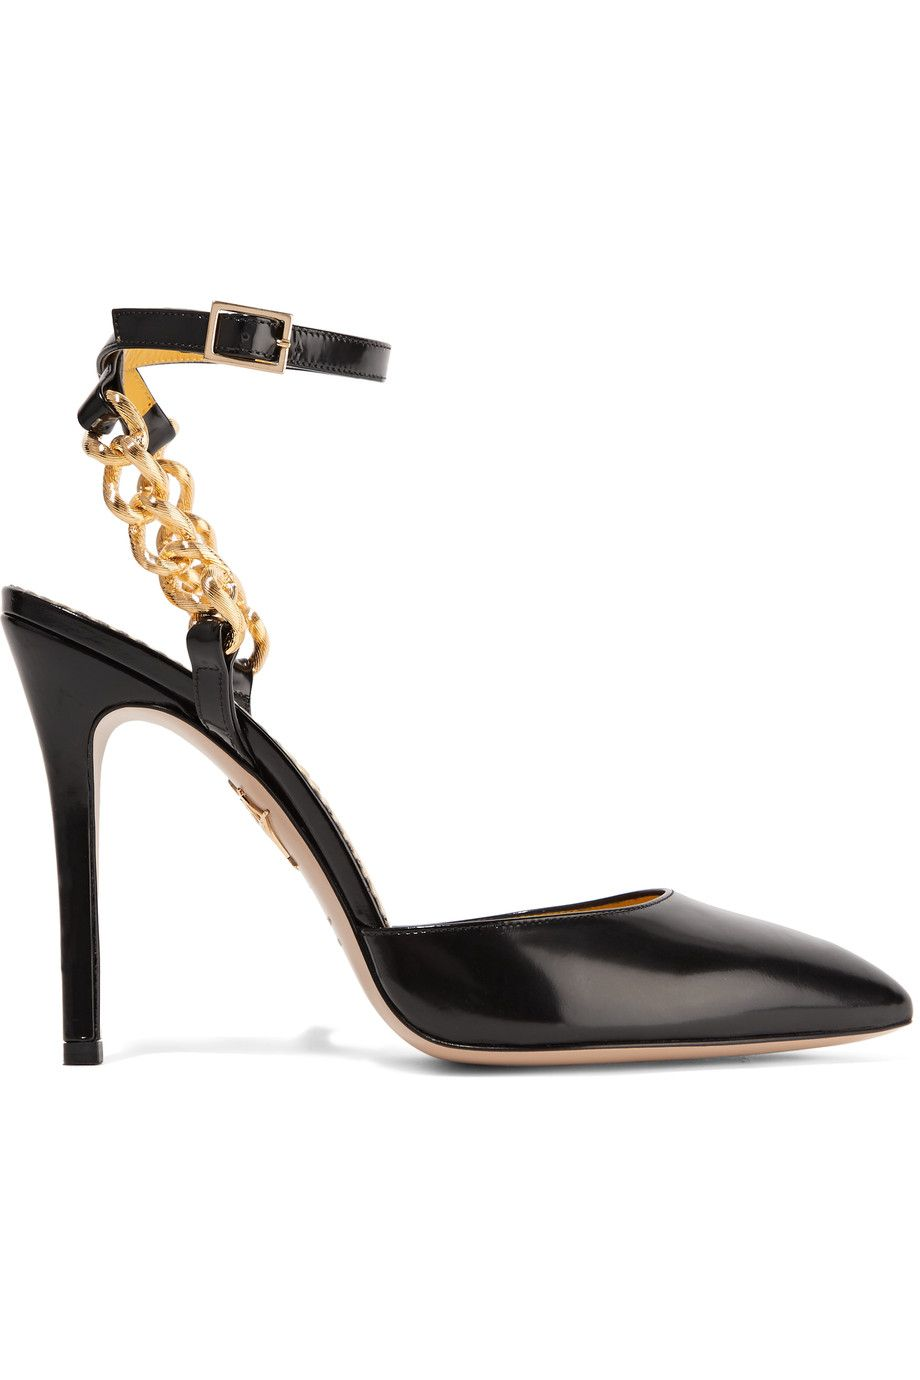 Ines Leather Pumps   Leather pumps